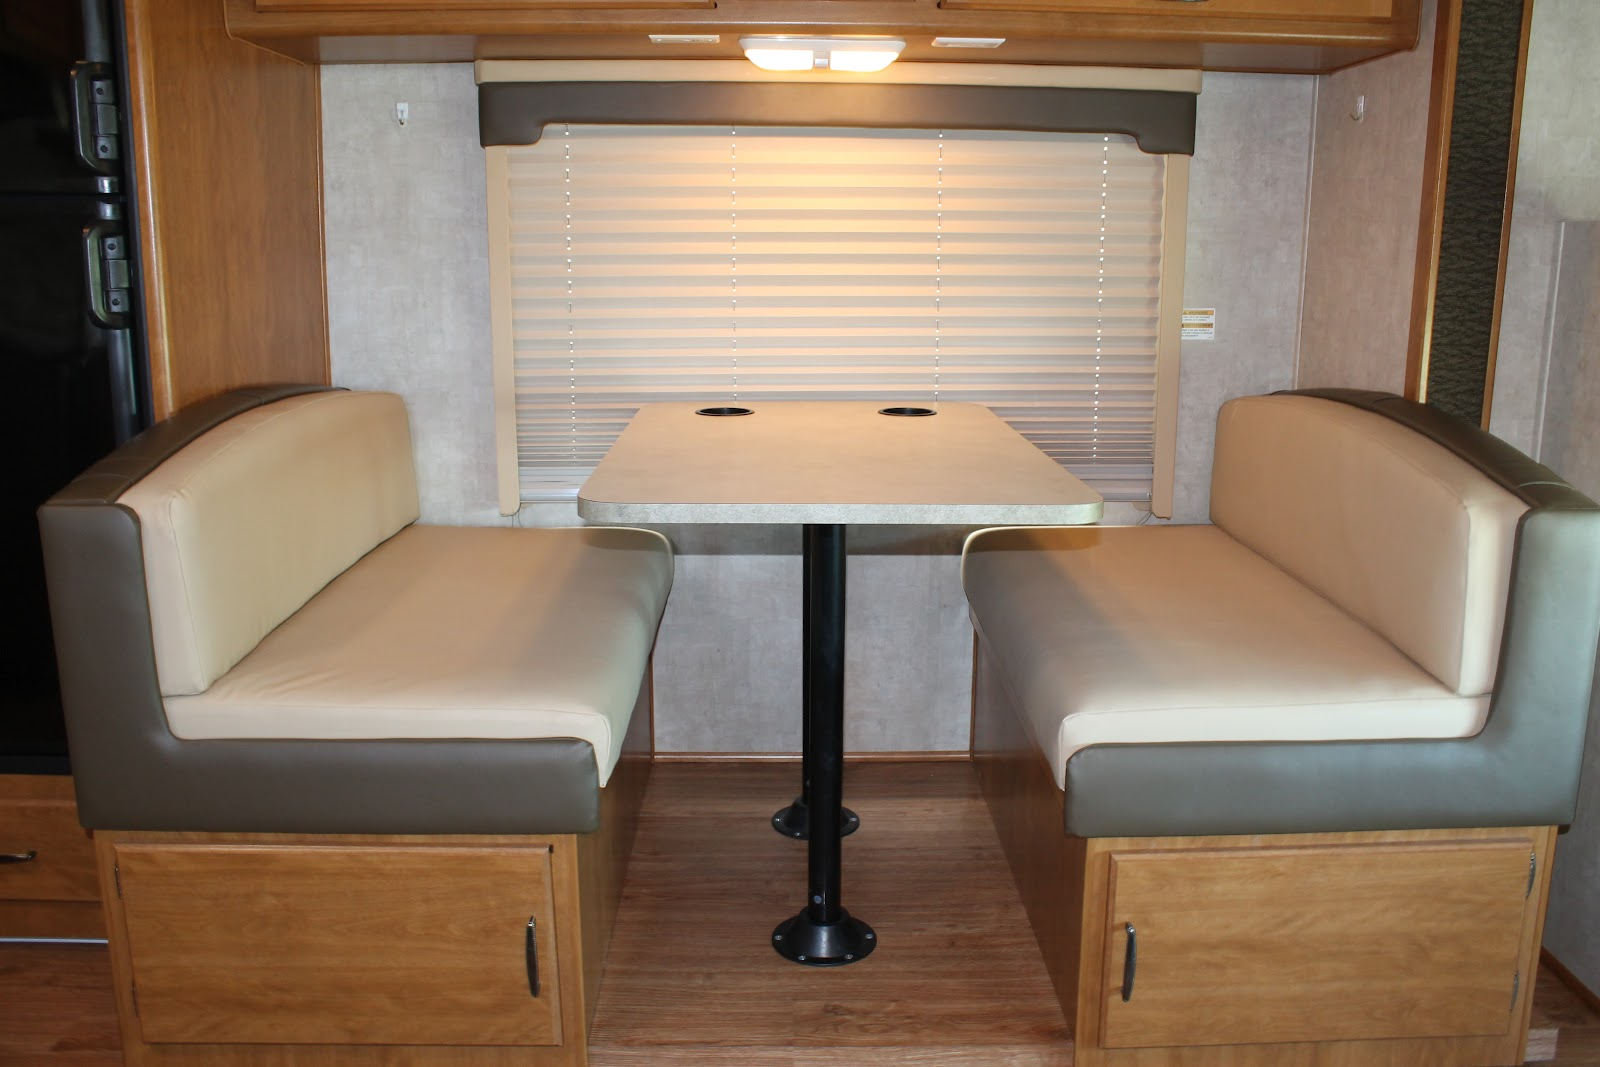 Countryside interiors transforming rvs and trailers for Dinette furniture